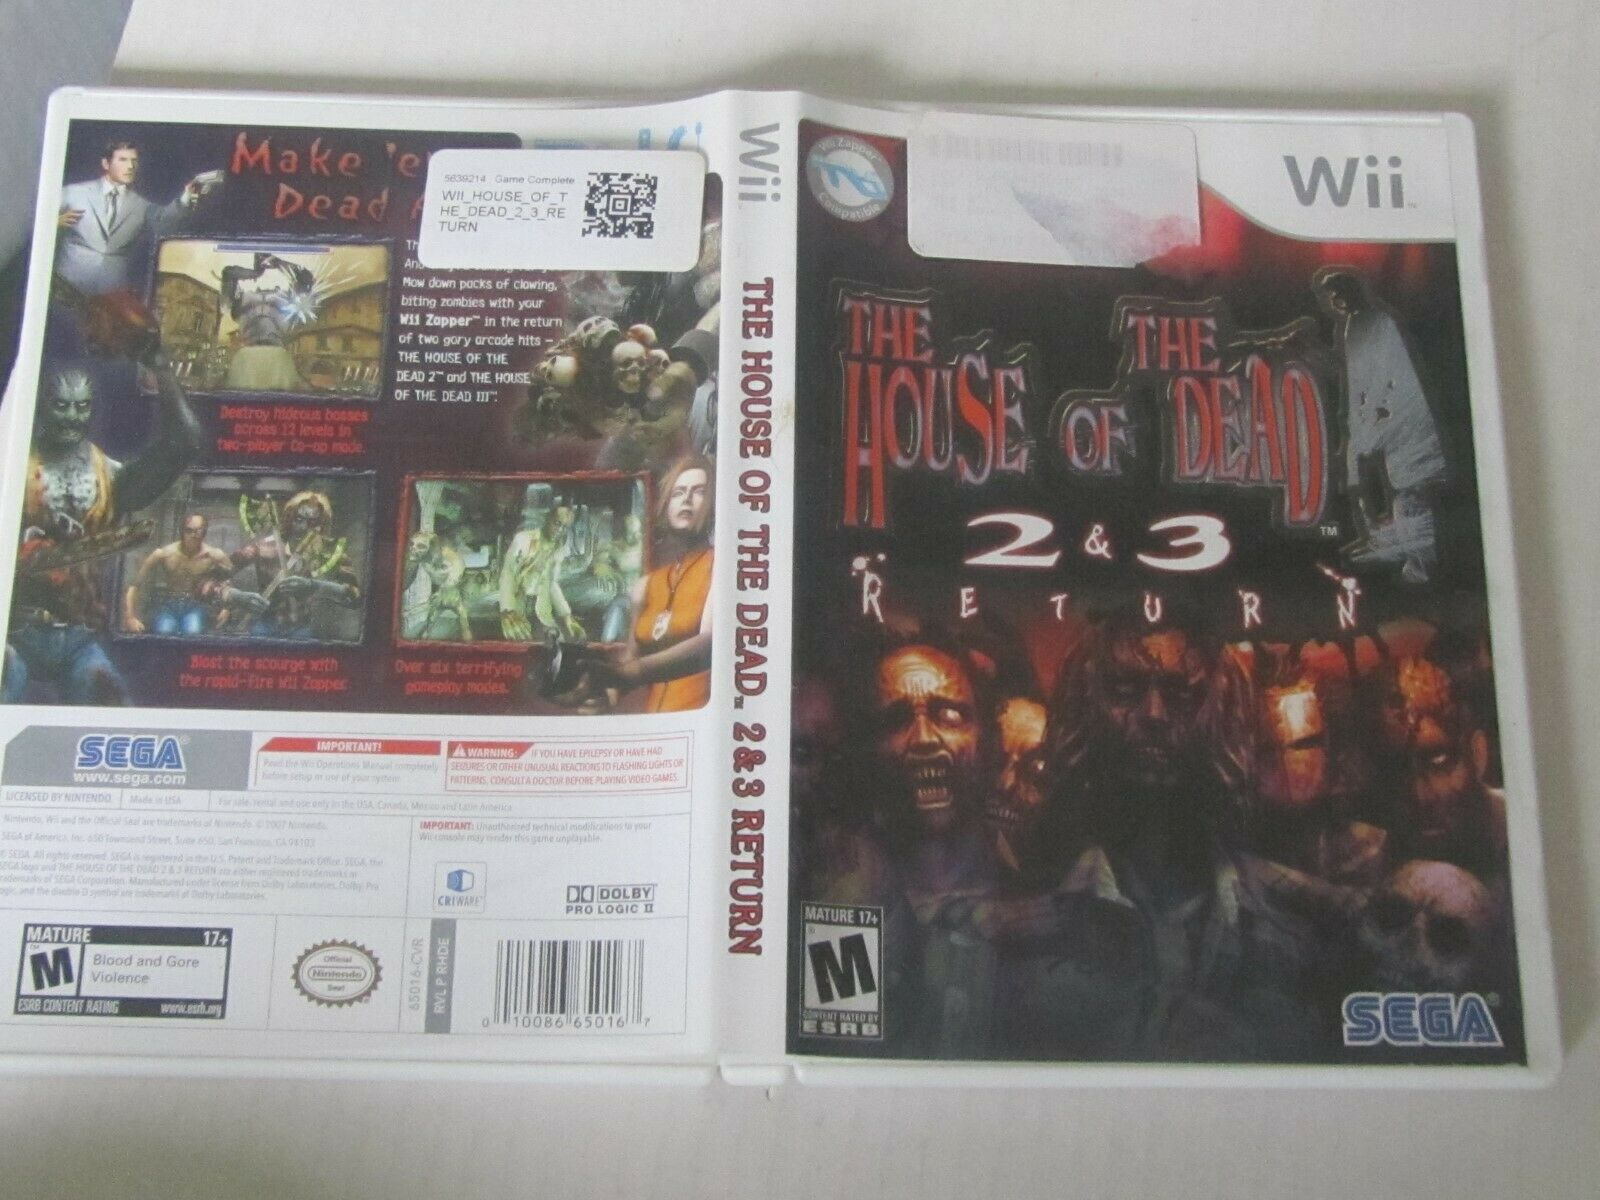 The House Of The Dead 2 3 Return Nintendo Wii 2008 For Sale